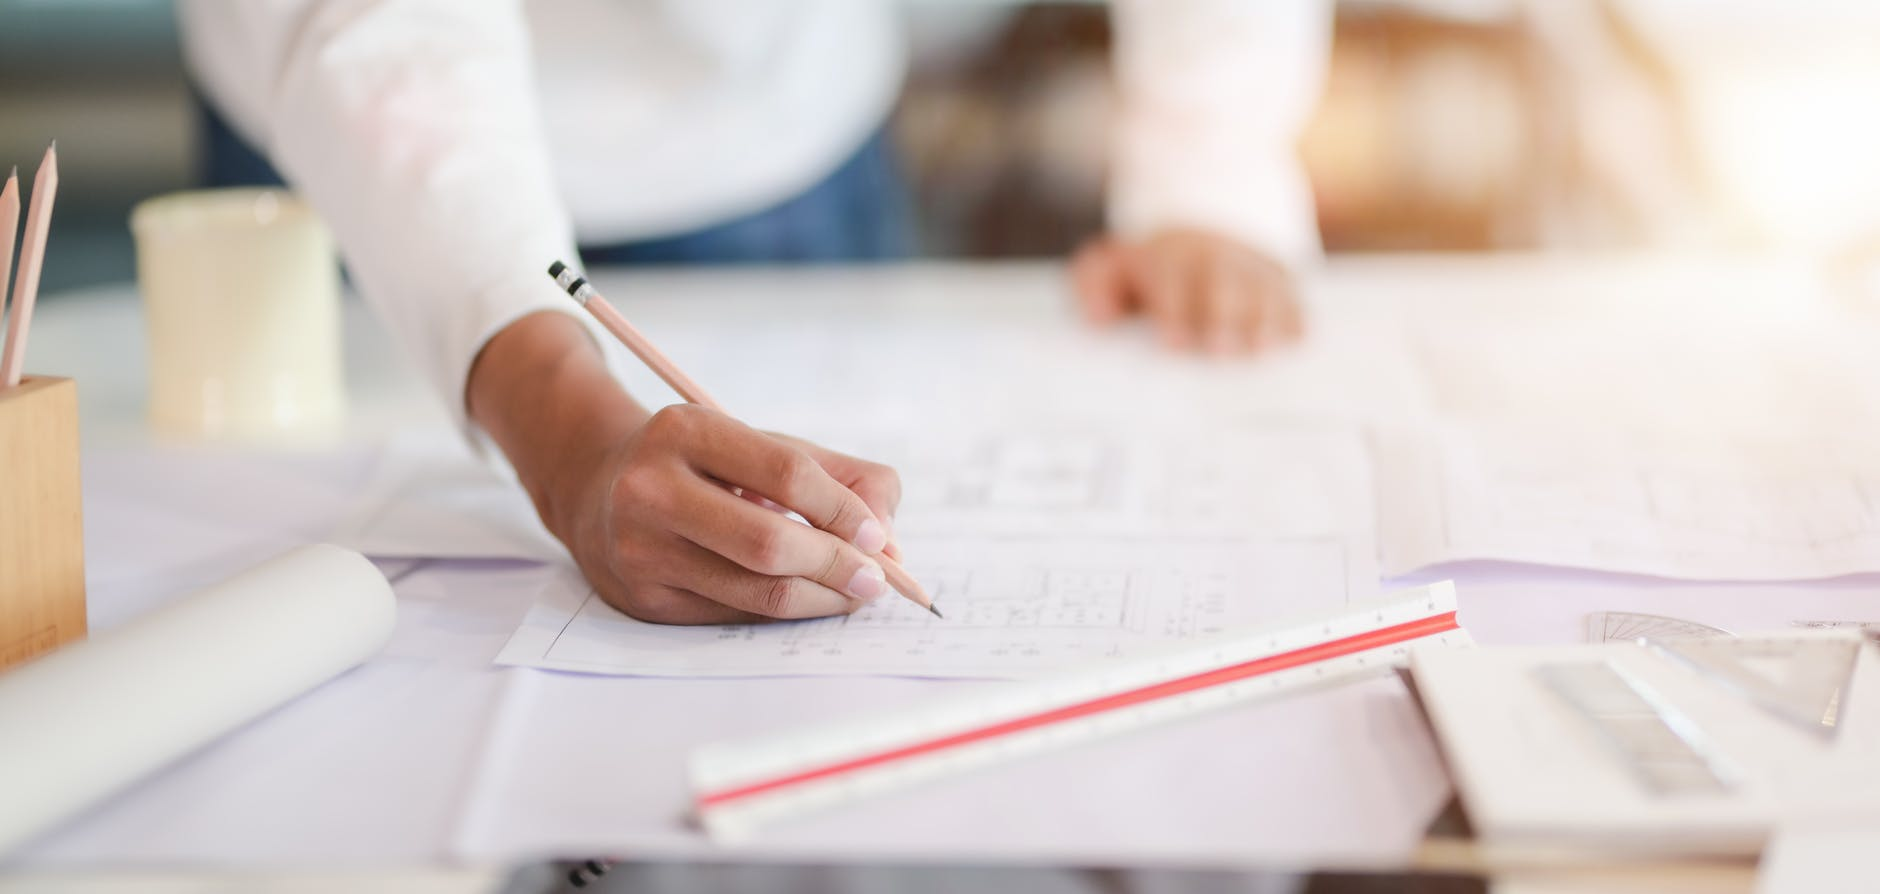 photo of person writing on paper